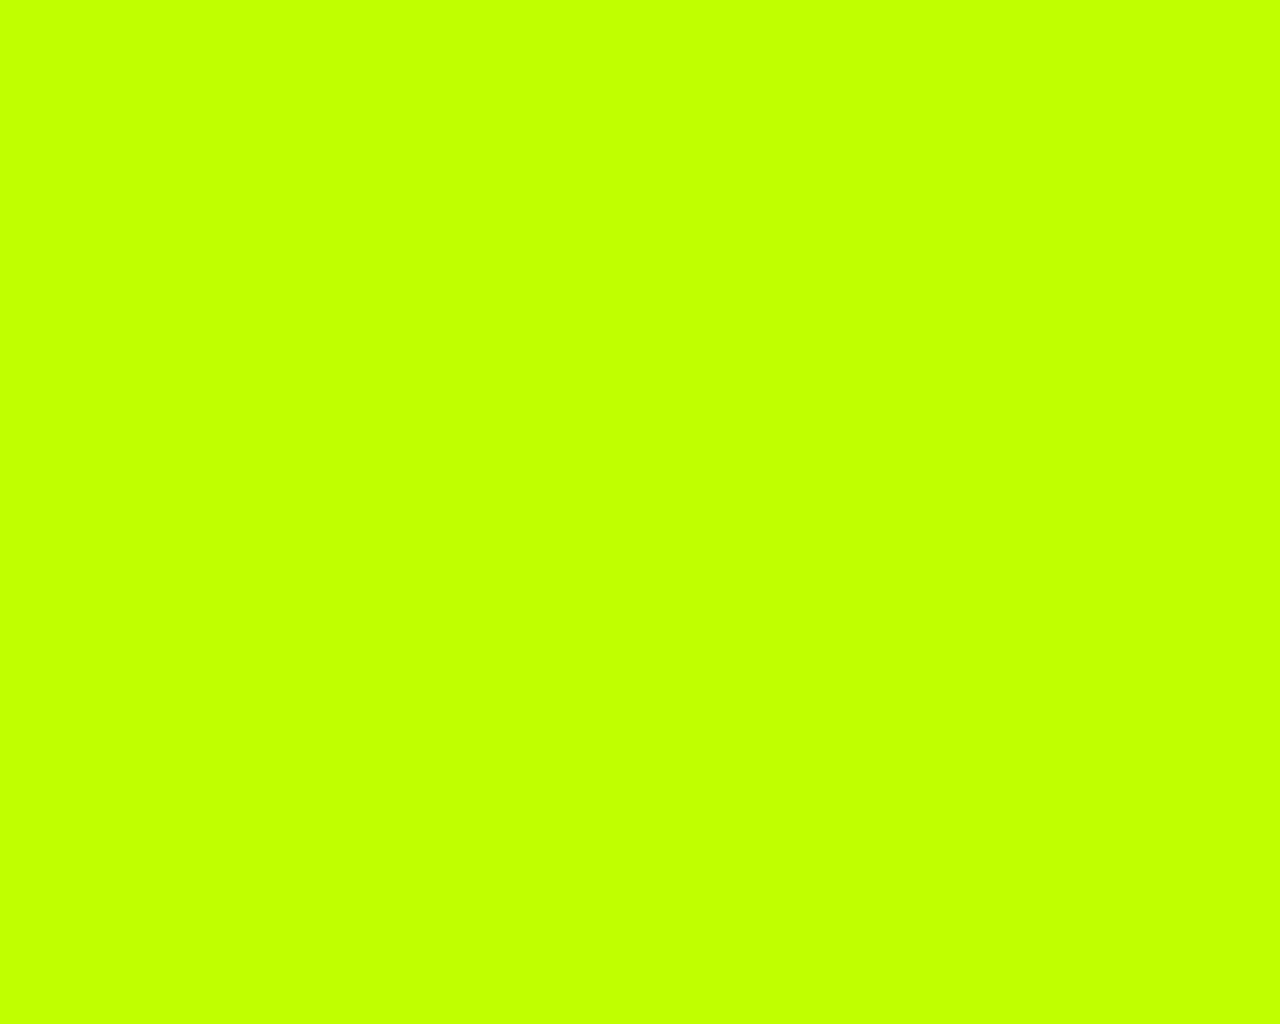 1280x1024 Bitter Lime Solid Color Background